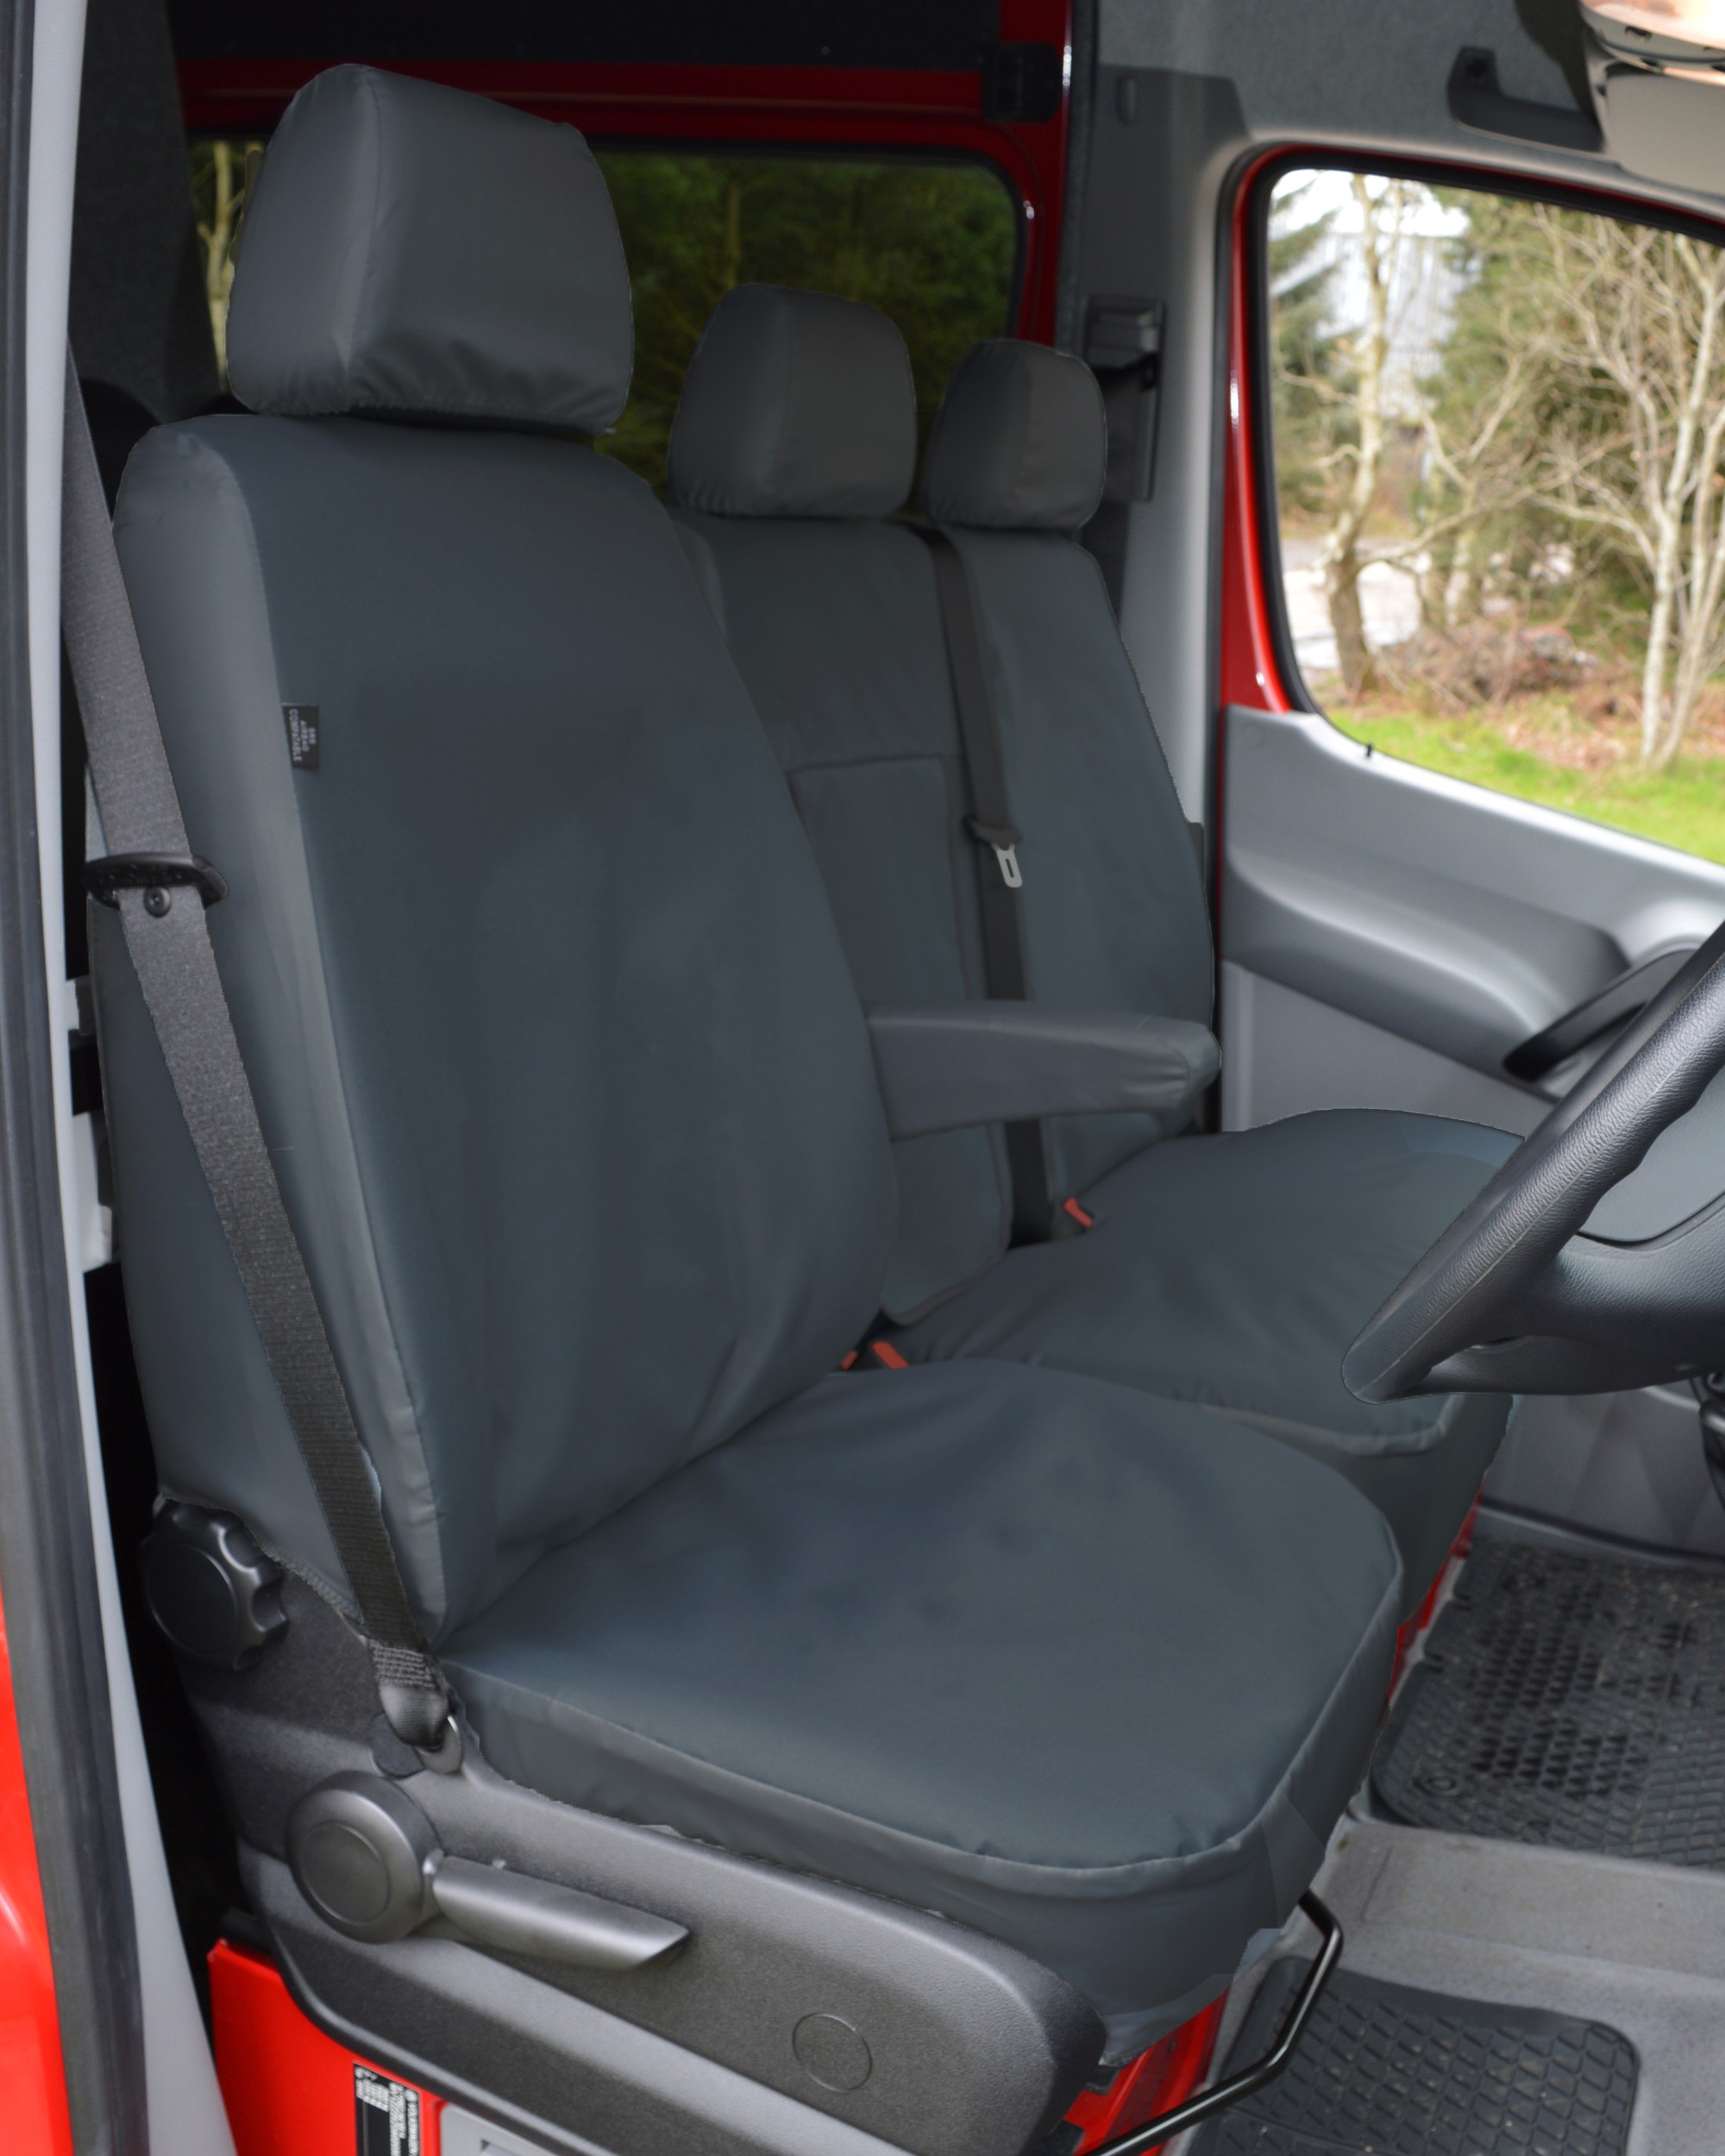 VW Crafter Heavy Duty Seat Covers